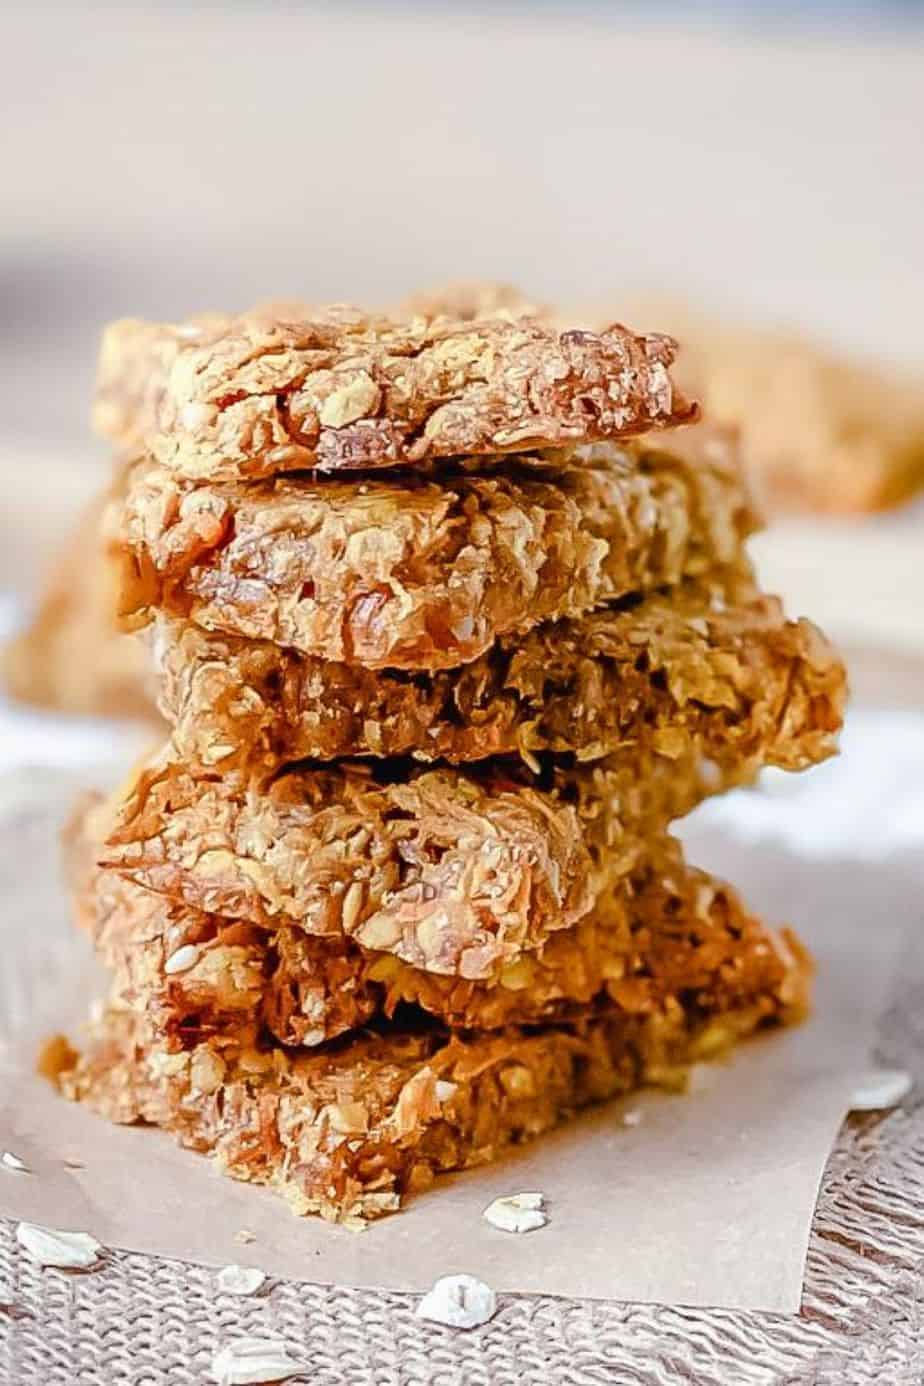 These soft carrot cookies are perfect for breakfast and are a great healthy snack option for your kids. Plus they taste like carrot cake! - The Yummy Bowl